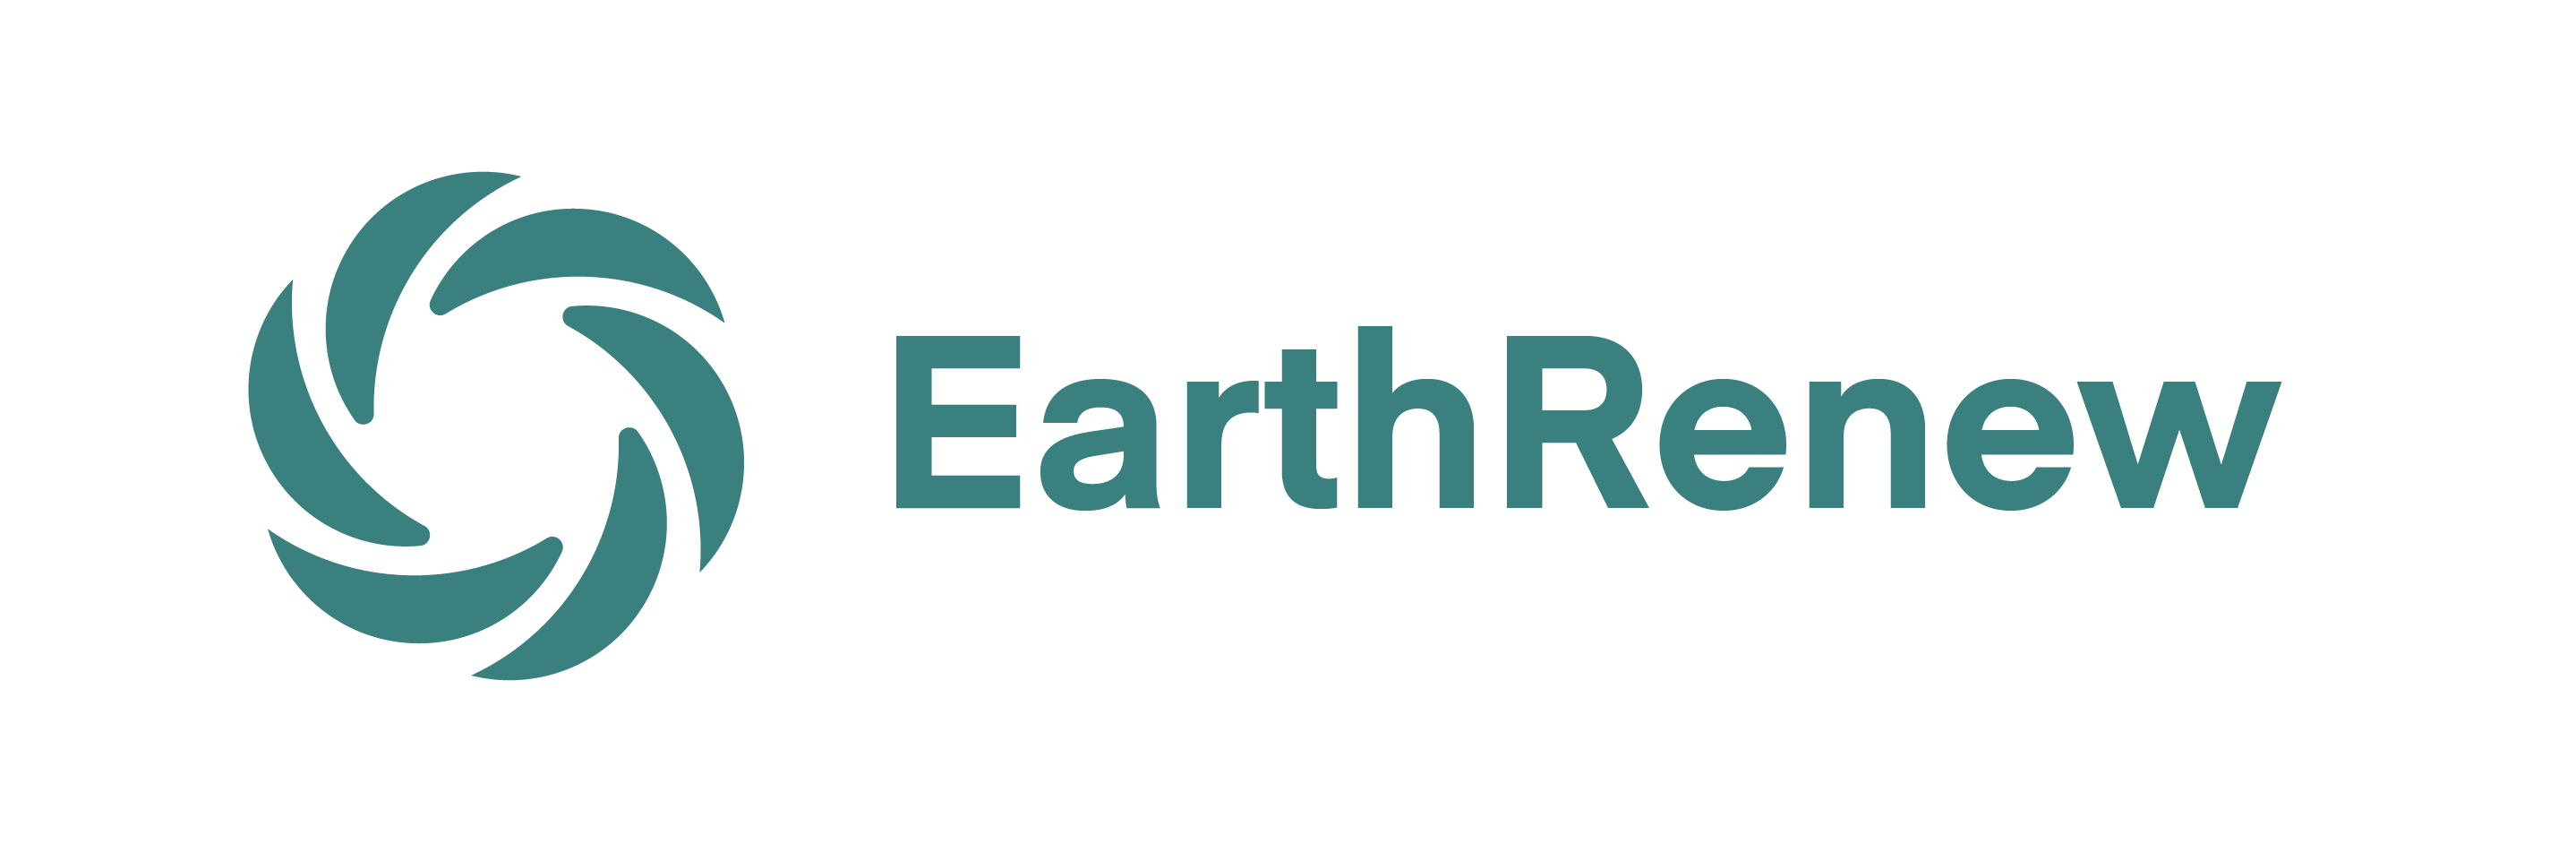 REPEAT -- EarthRenew Upsizes Its Previously Announced Proposed Acquisition of Replenish Nutrients Equity From 38% to 100%